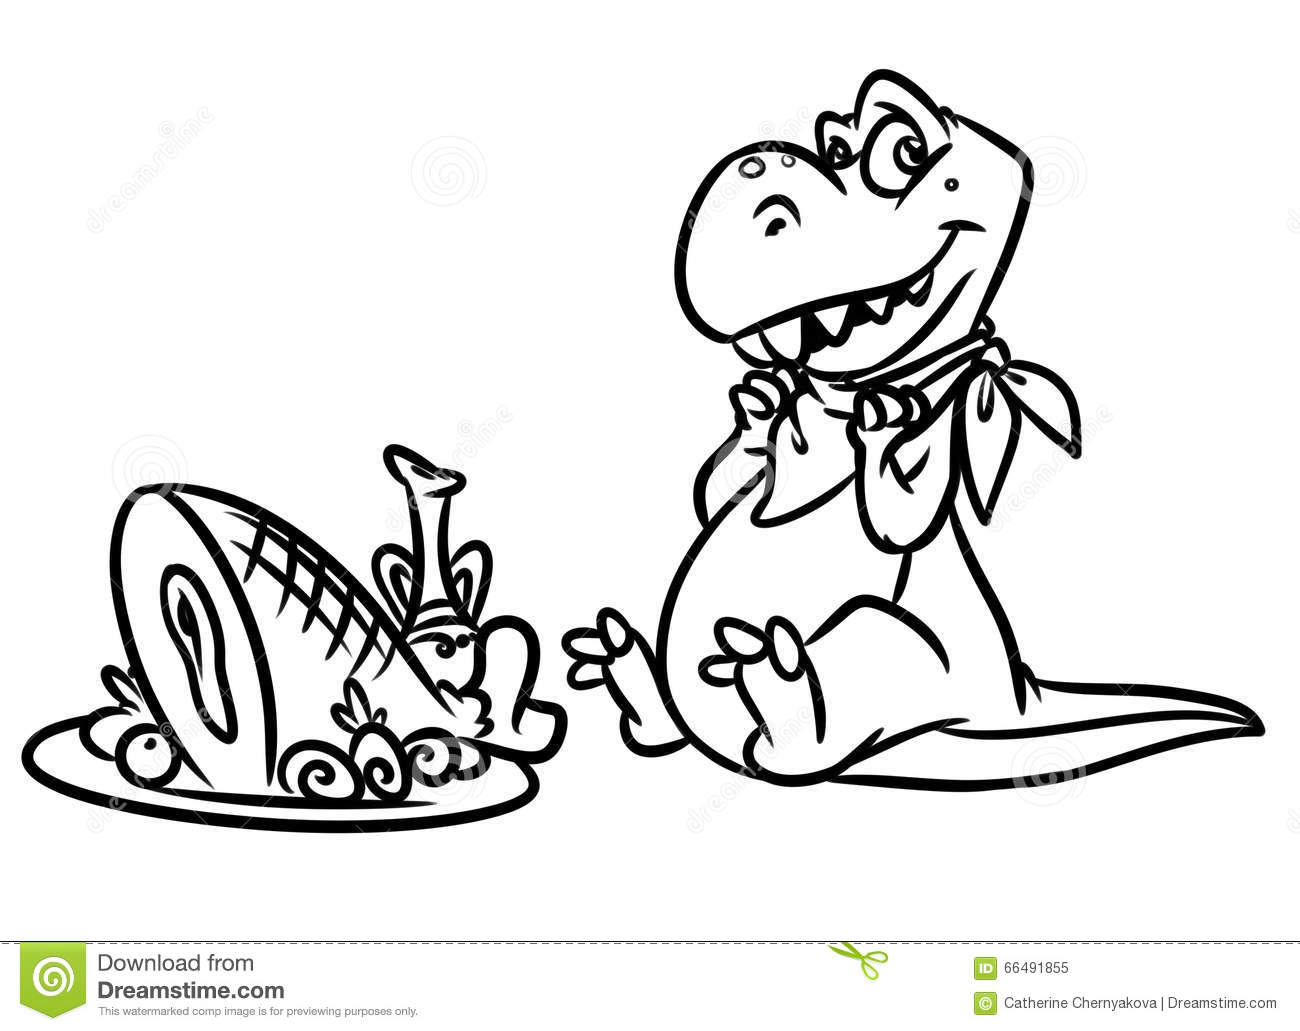 Clip Art Breakfast Coloring Page dinosaur predator breakfast jurassic period coloring pages stock pages